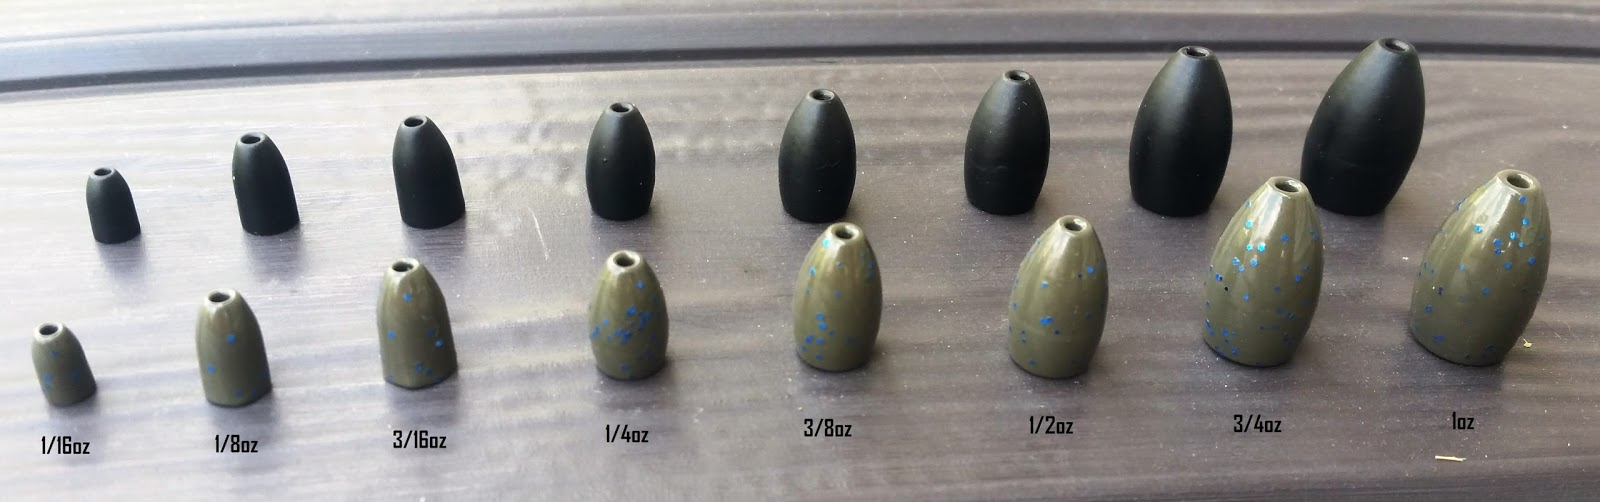 Fishing Weight Chart Solidique27